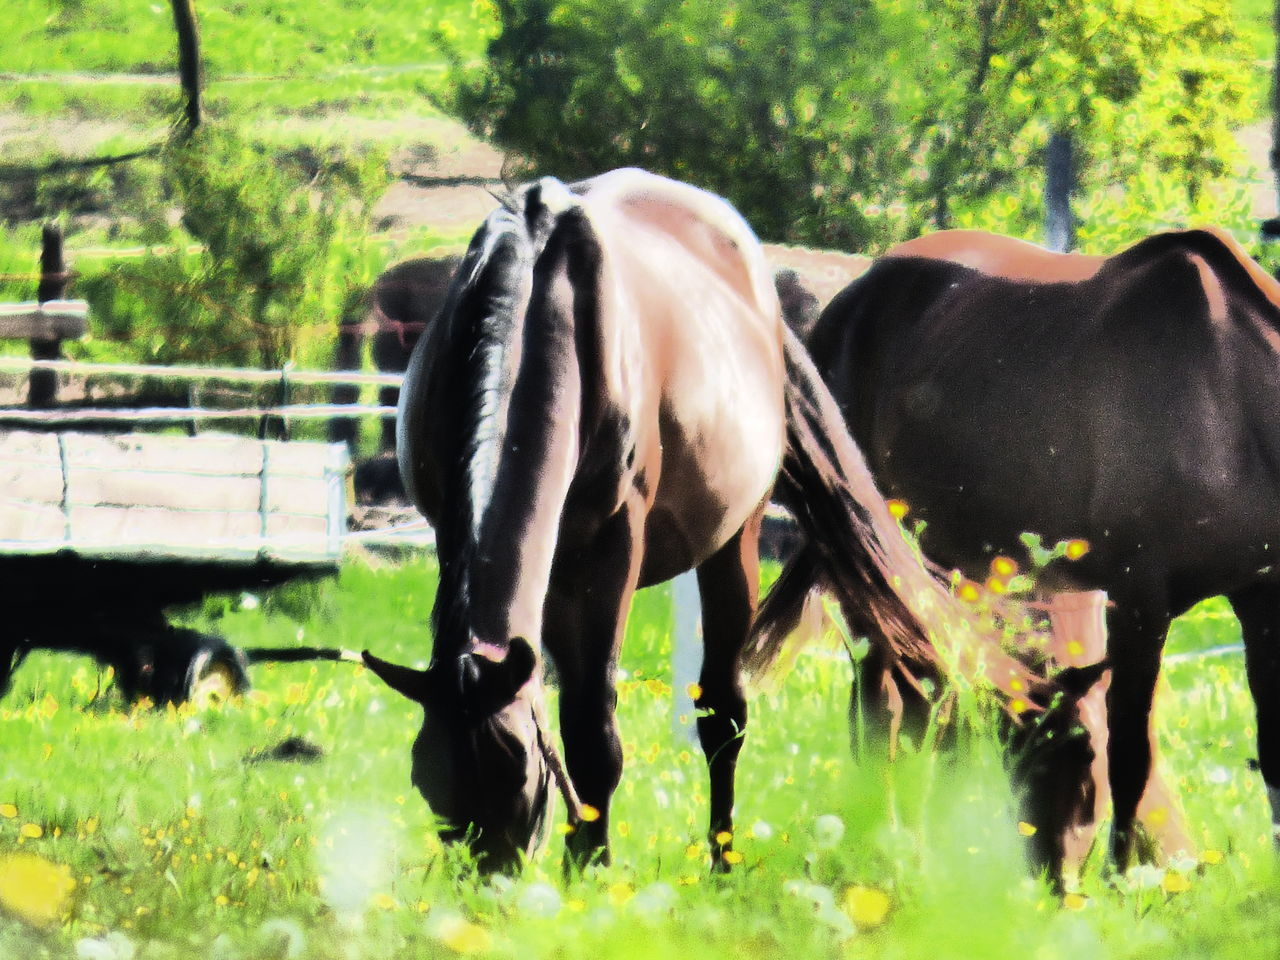 horse, domestic animals, animal themes, mammal, grass, field, livestock, herbivorous, grazing, day, paddock, outdoors, no people, tree, foal, nature, standing